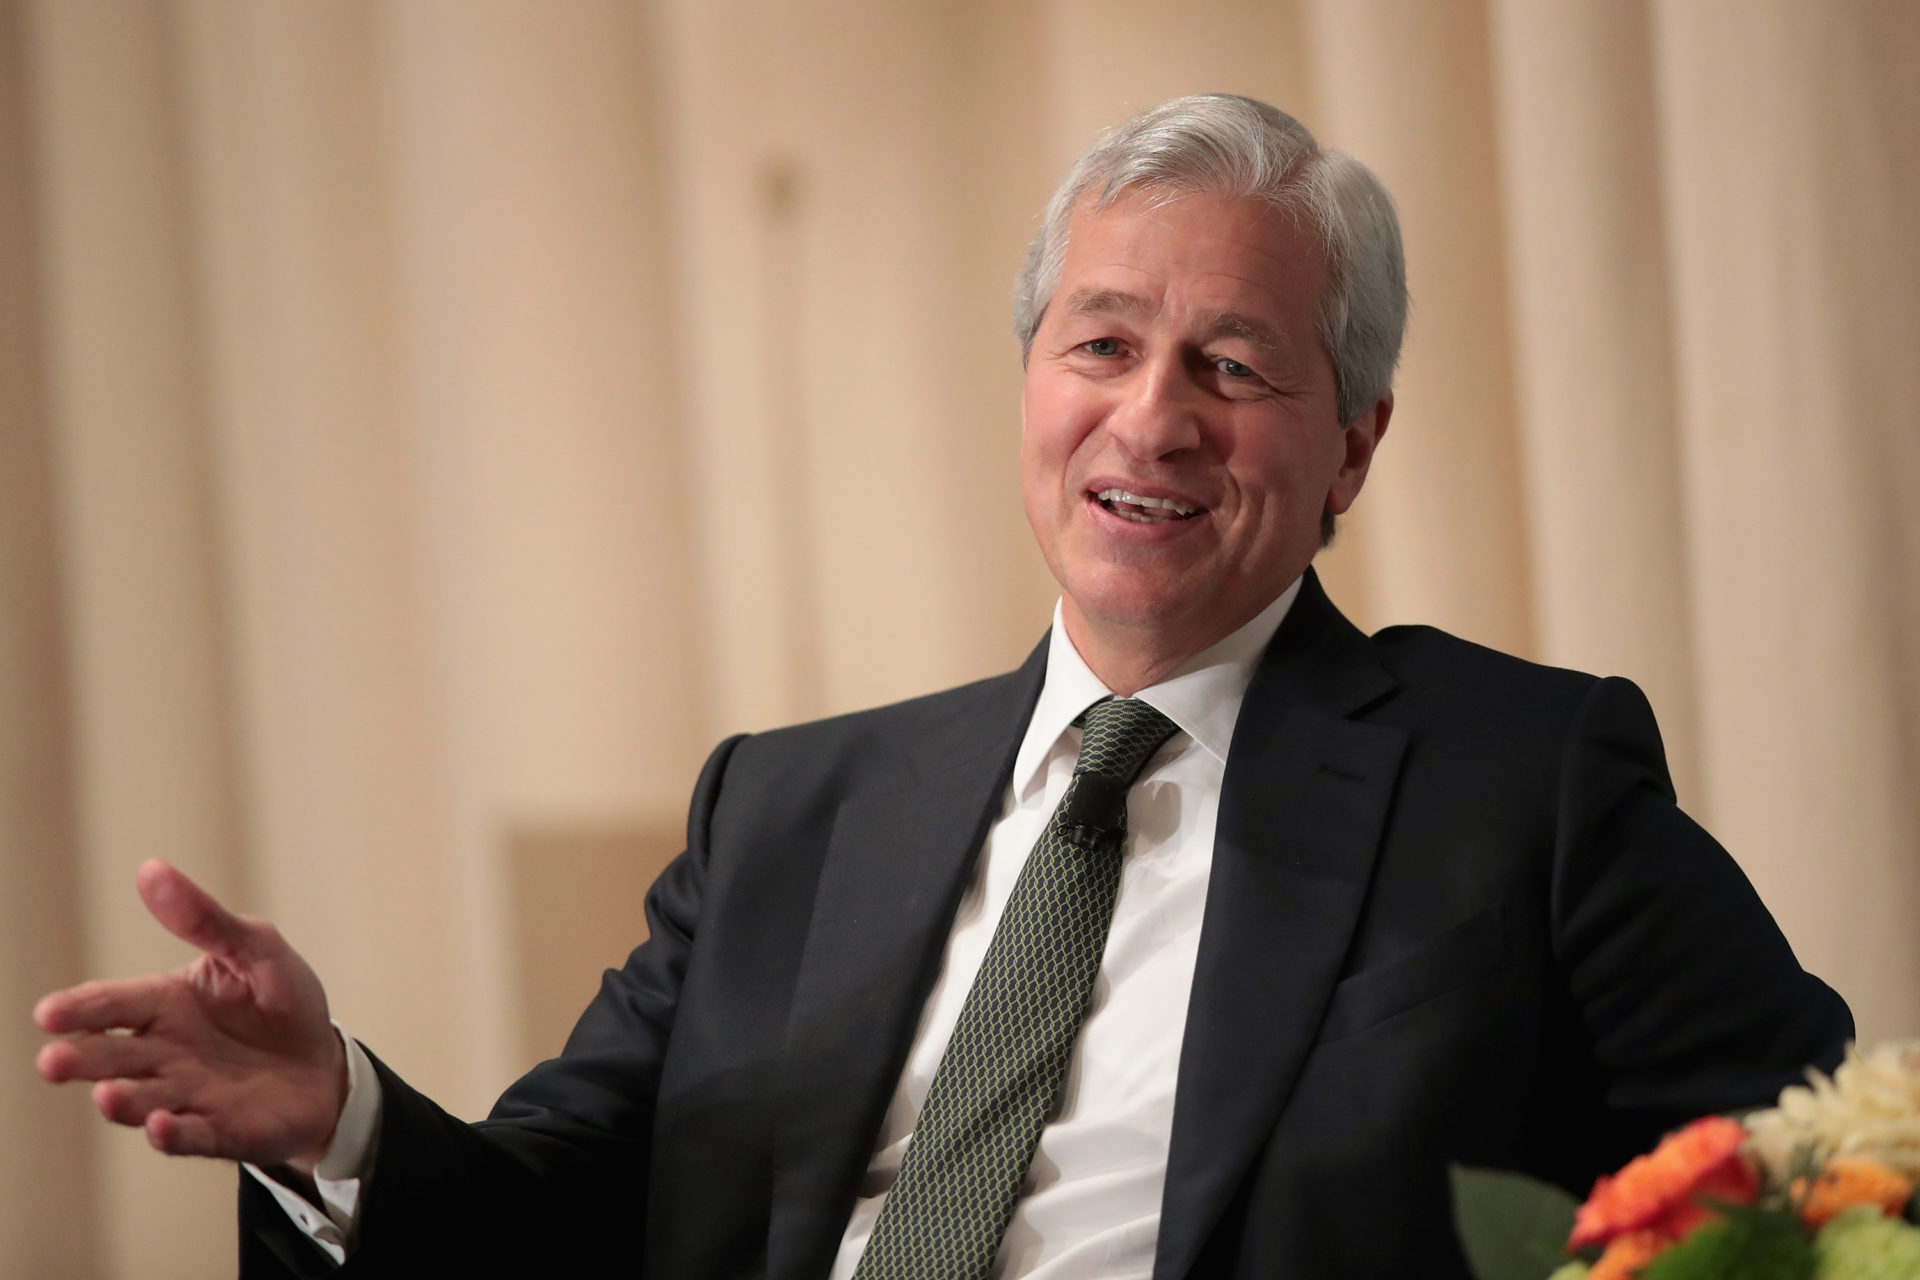 JP Morgan's Jamie Dimon Does 'Not Give a Sh*t' About Bitcoin (BTC) 13